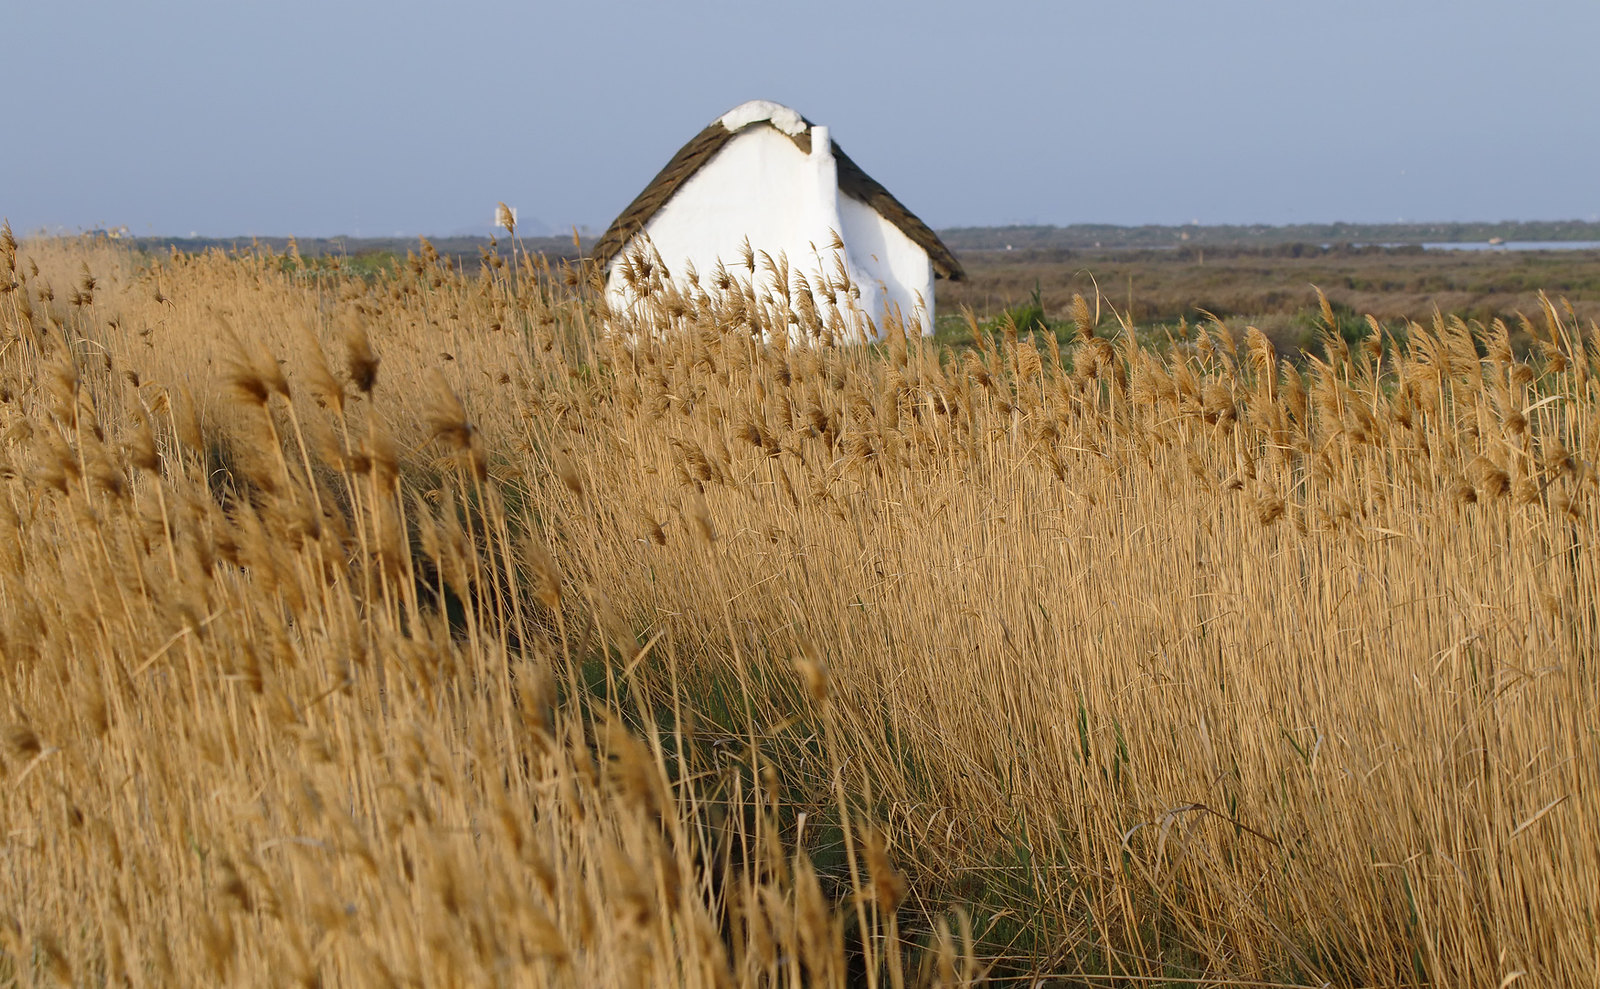 Building in reedbed - Ebro Delta